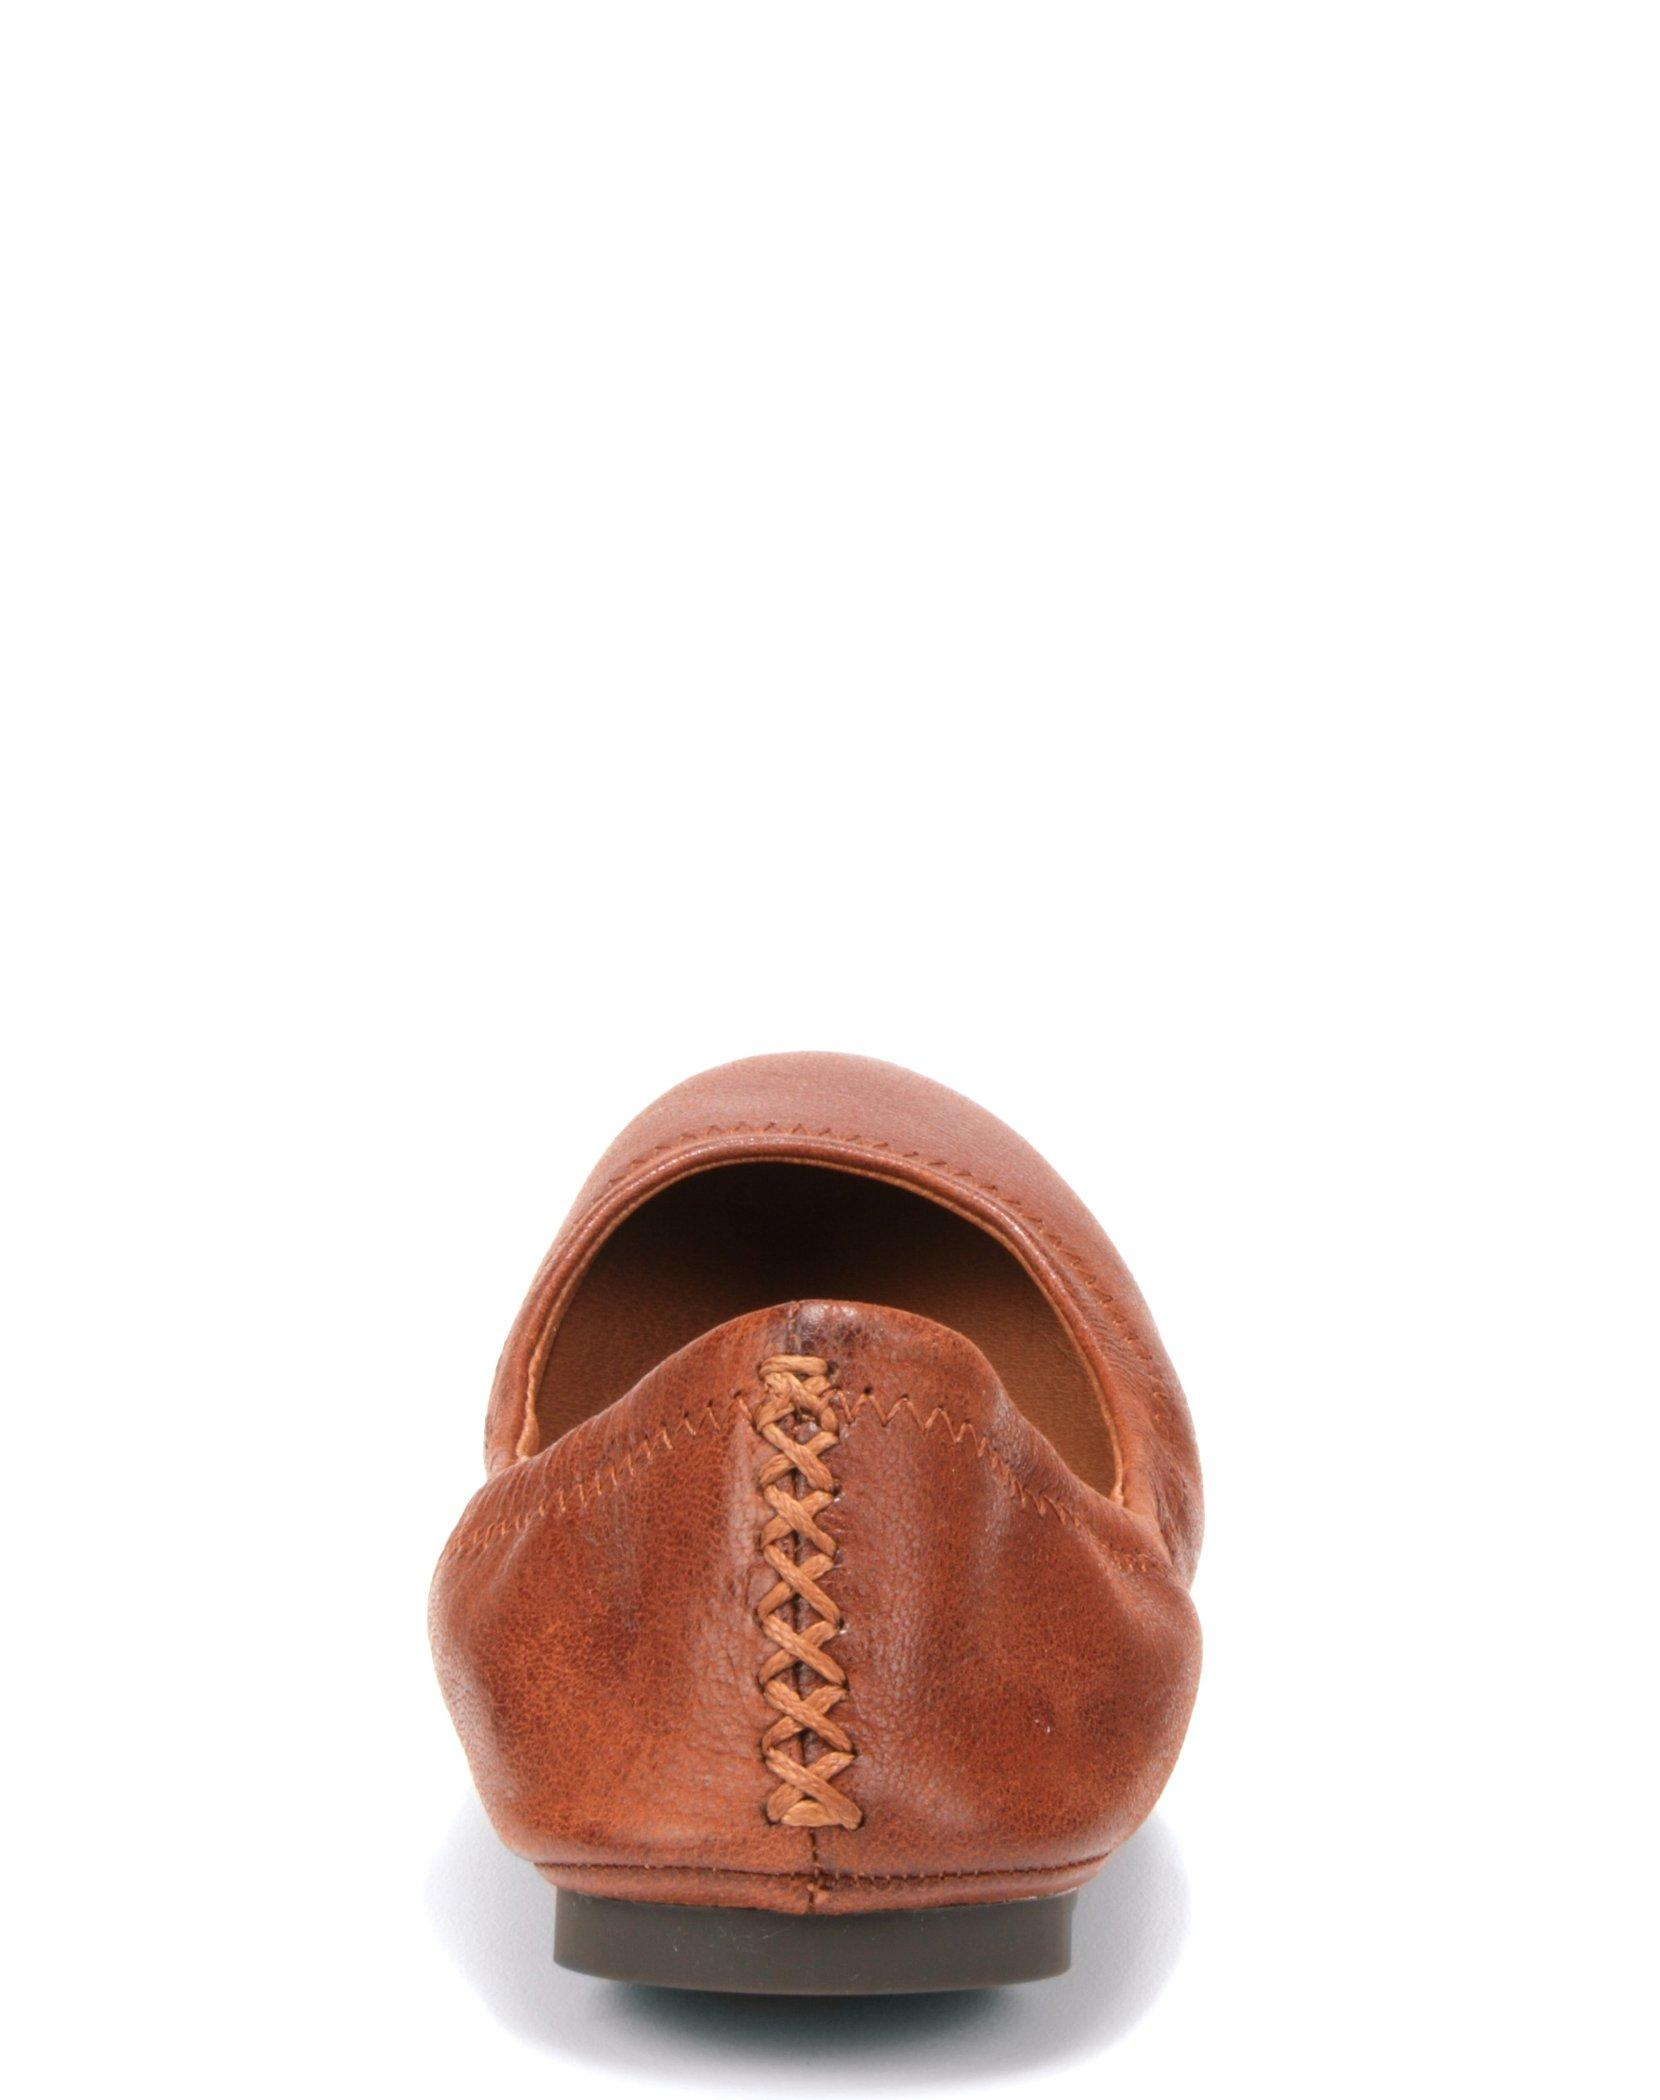 EMMIE LEATHER FLATS, image 4